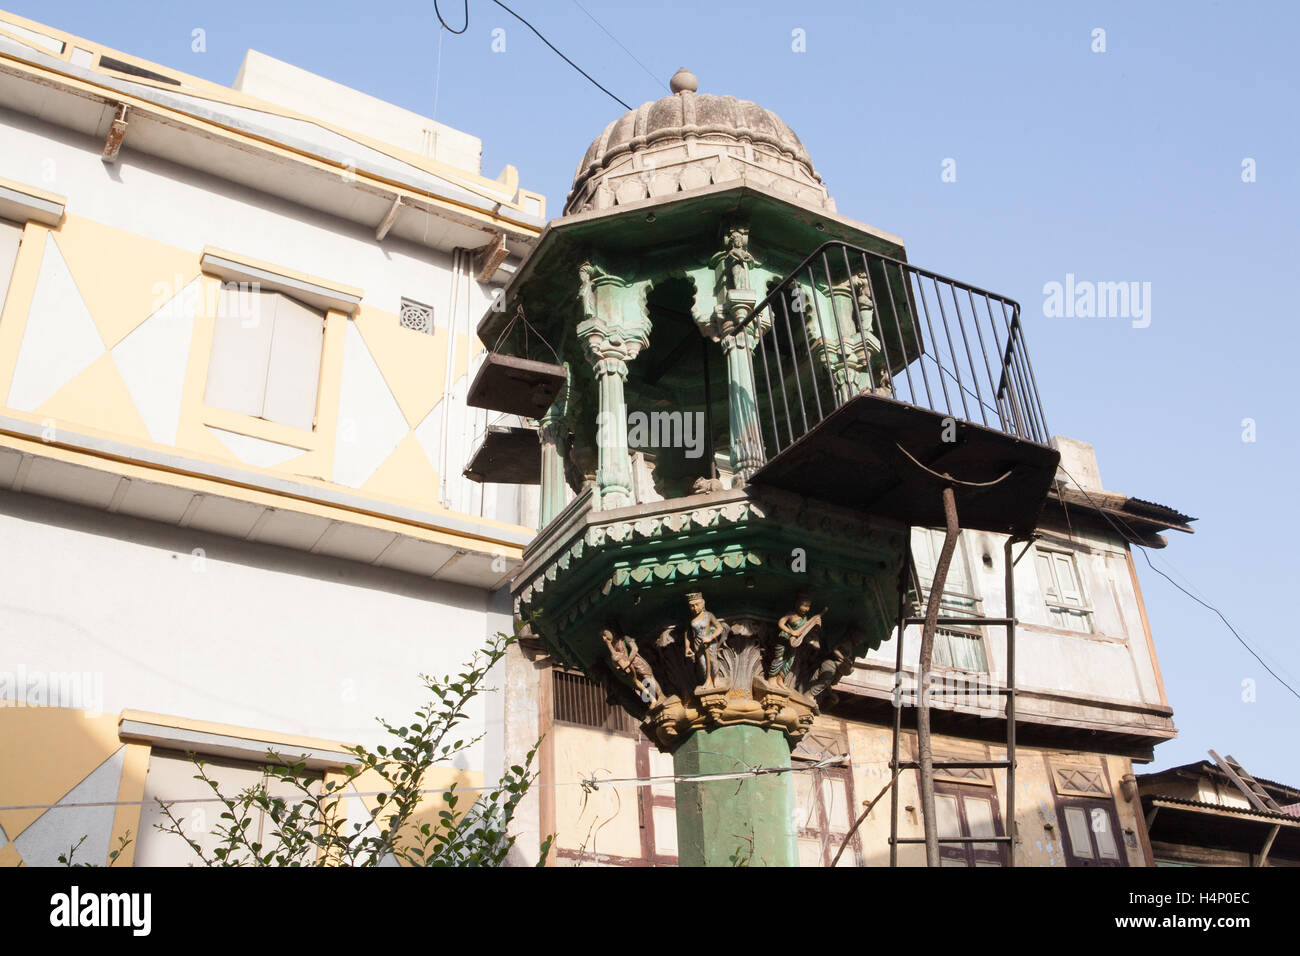 Architecture within old walled area of Ahmedabad city,Gujurat state,India South Asia. - Stock Image